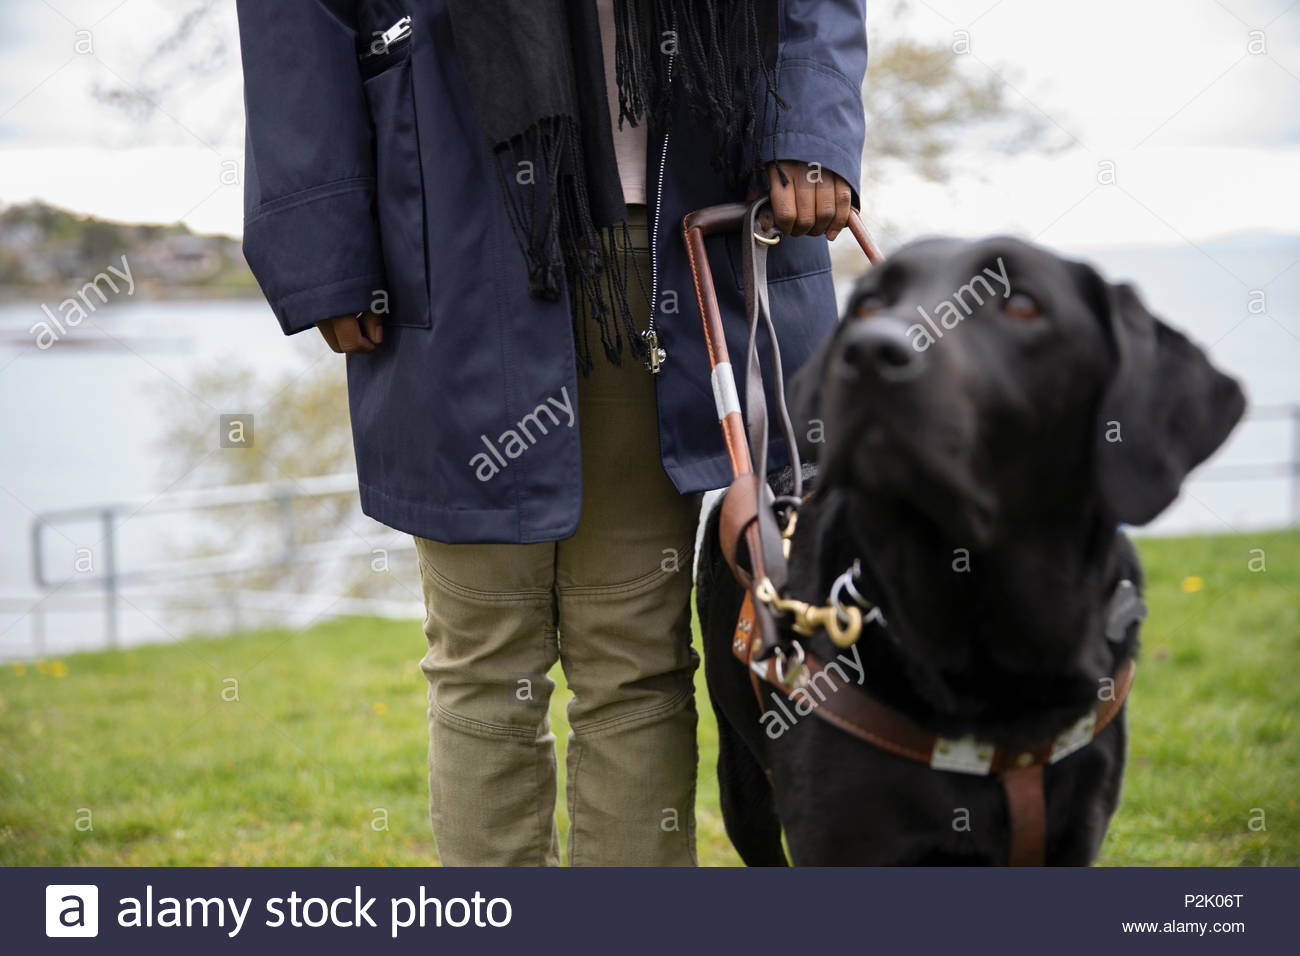 Black seeing eye dog leading visually impaired woman - Stock Image